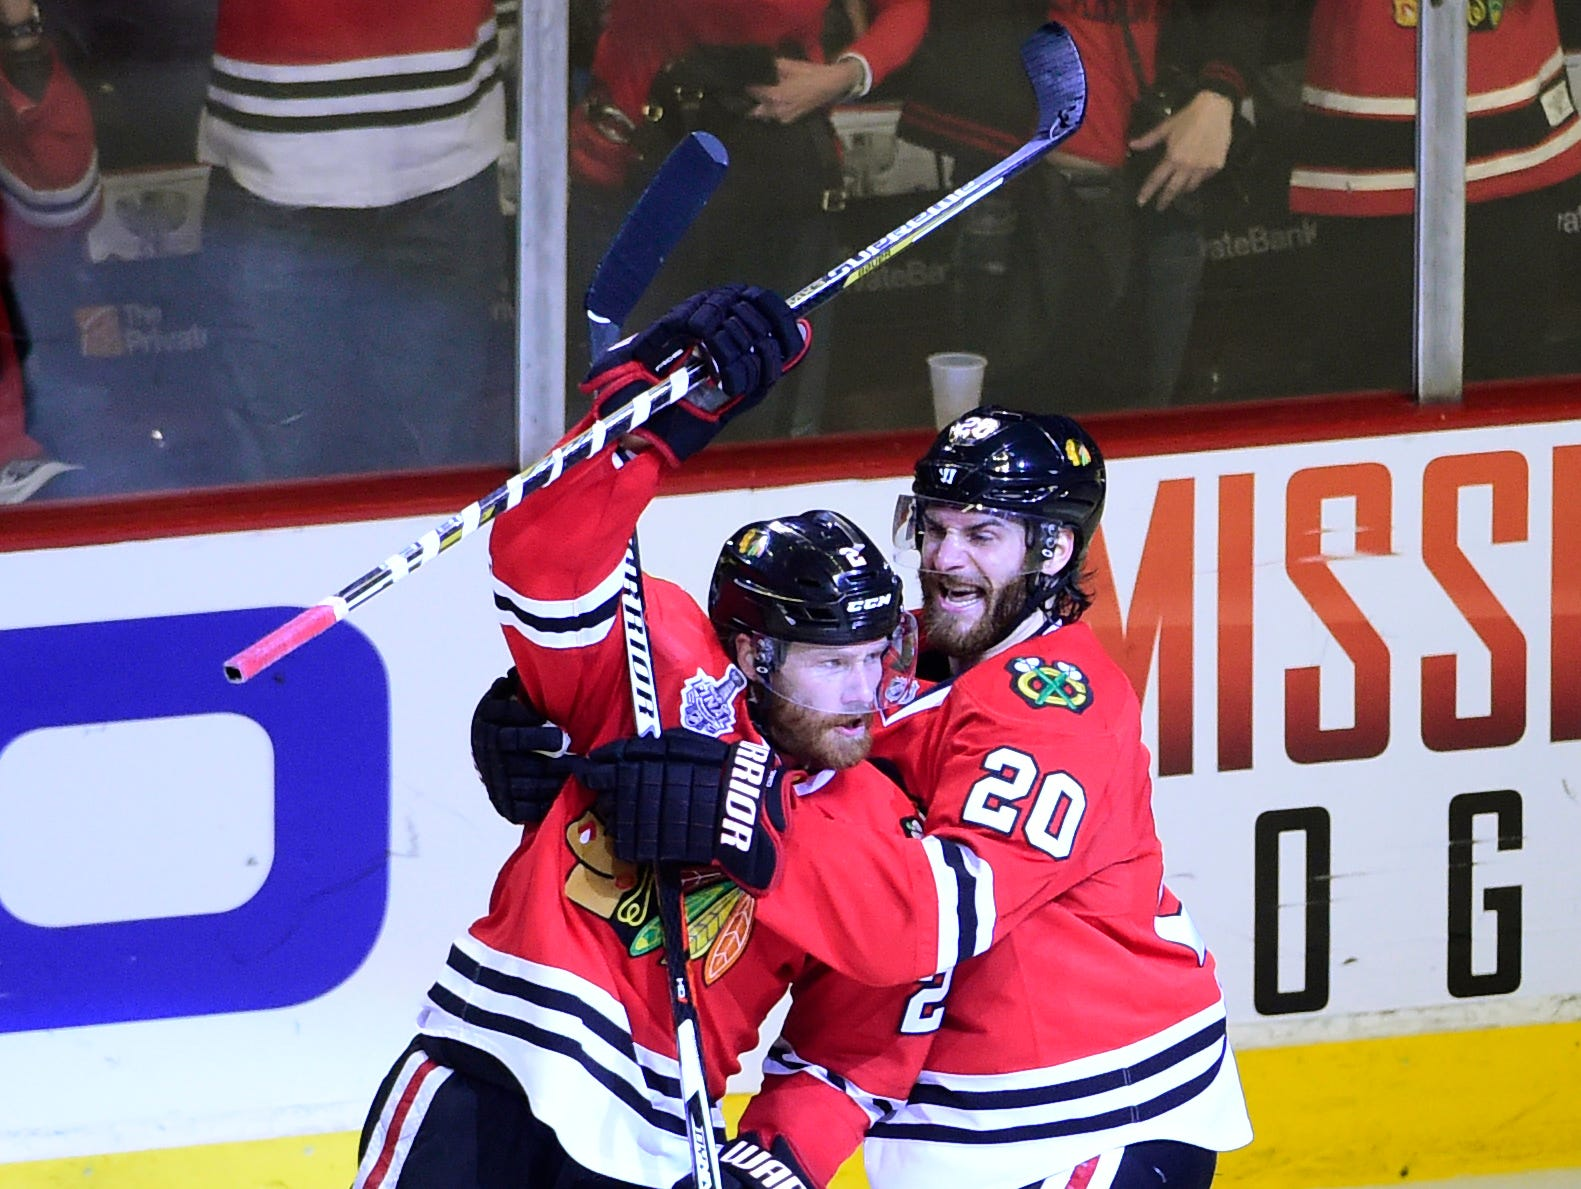 Chicago Blackhawks defenseman Duncan Keith (2) celebrates with left wing Brandon Saad (20) after scoring during the second period of game six of the 2015 Stanley Cup Final against the Tampa Bay Lightning at United Center.